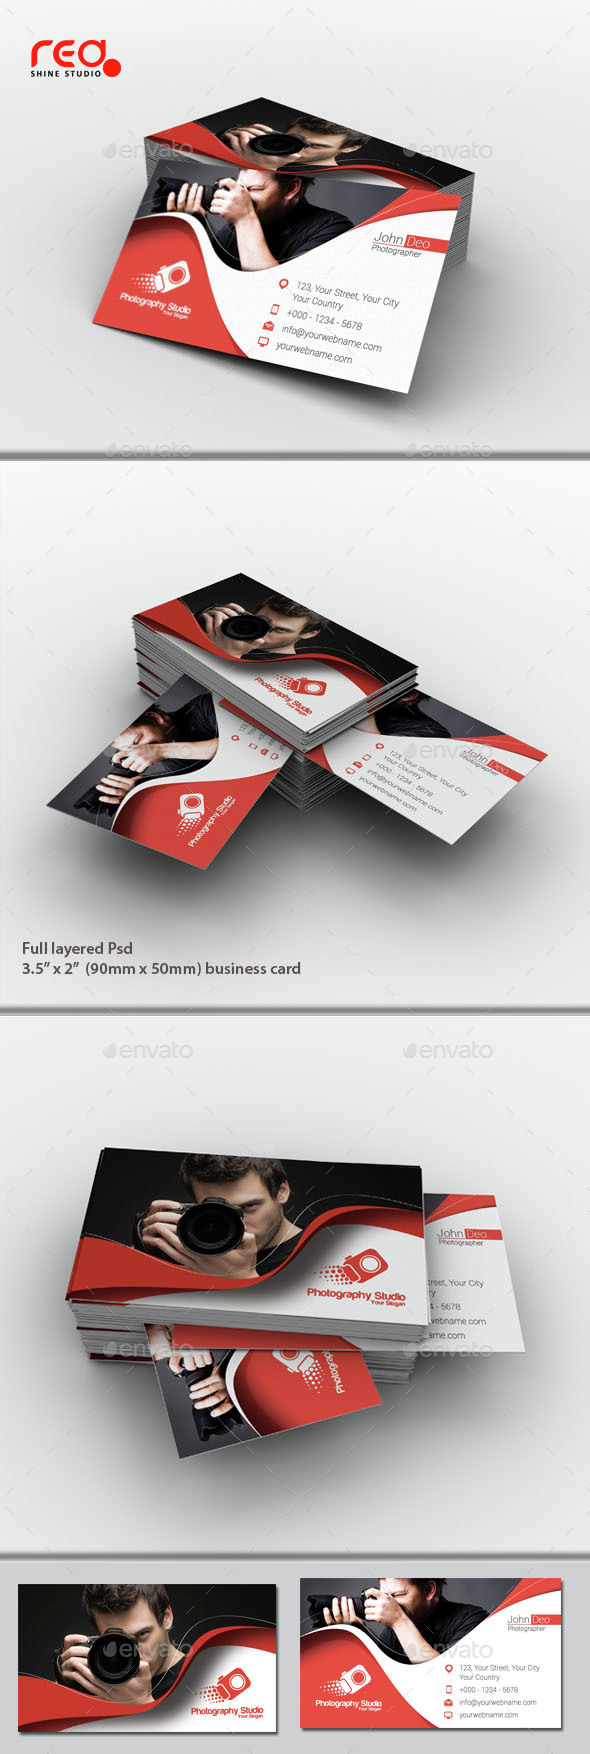 Photography Studio Business Card Set - Business Cards Print Templates